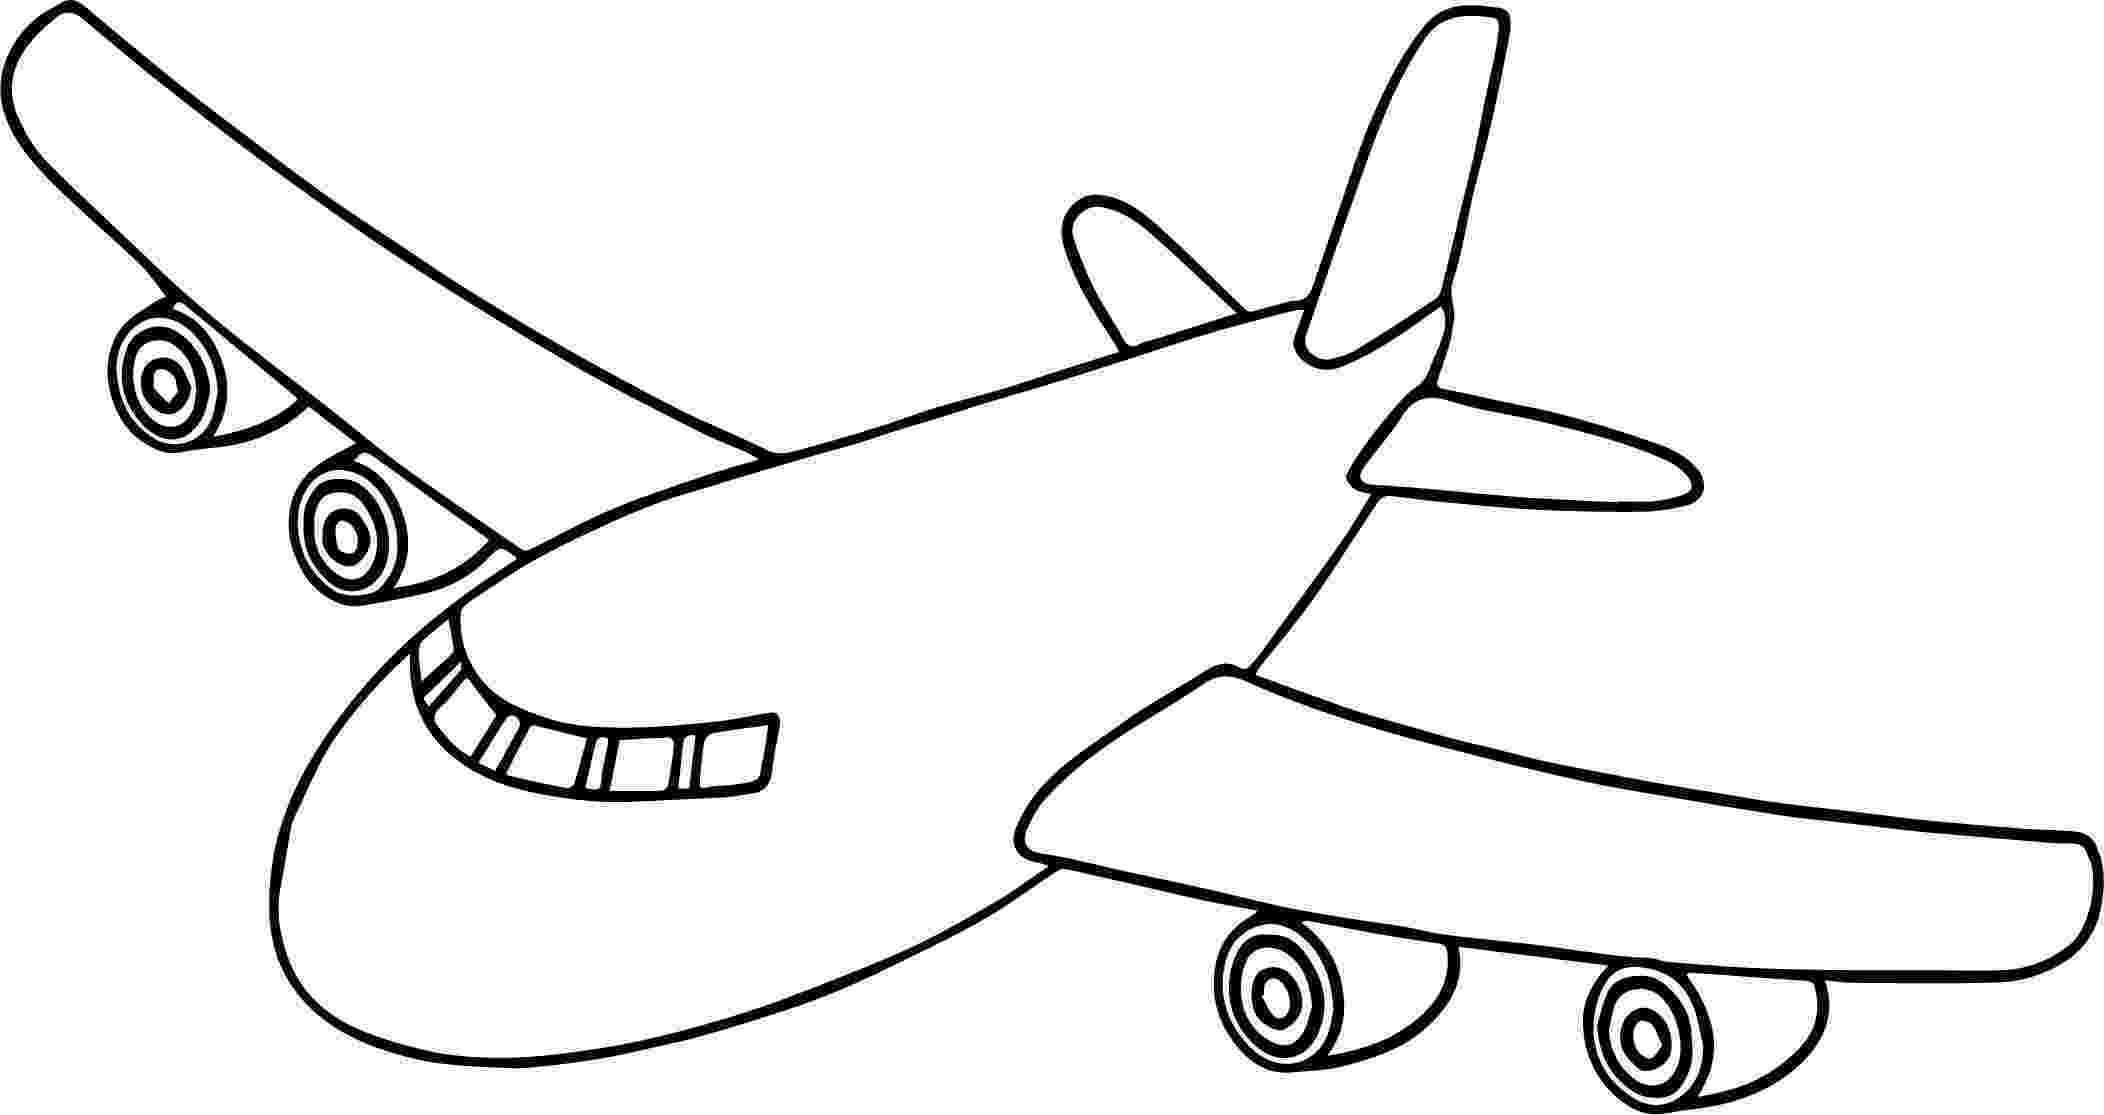 planes colouring pages 18 airplane coloring pages pdf jpg free premium pages colouring planes